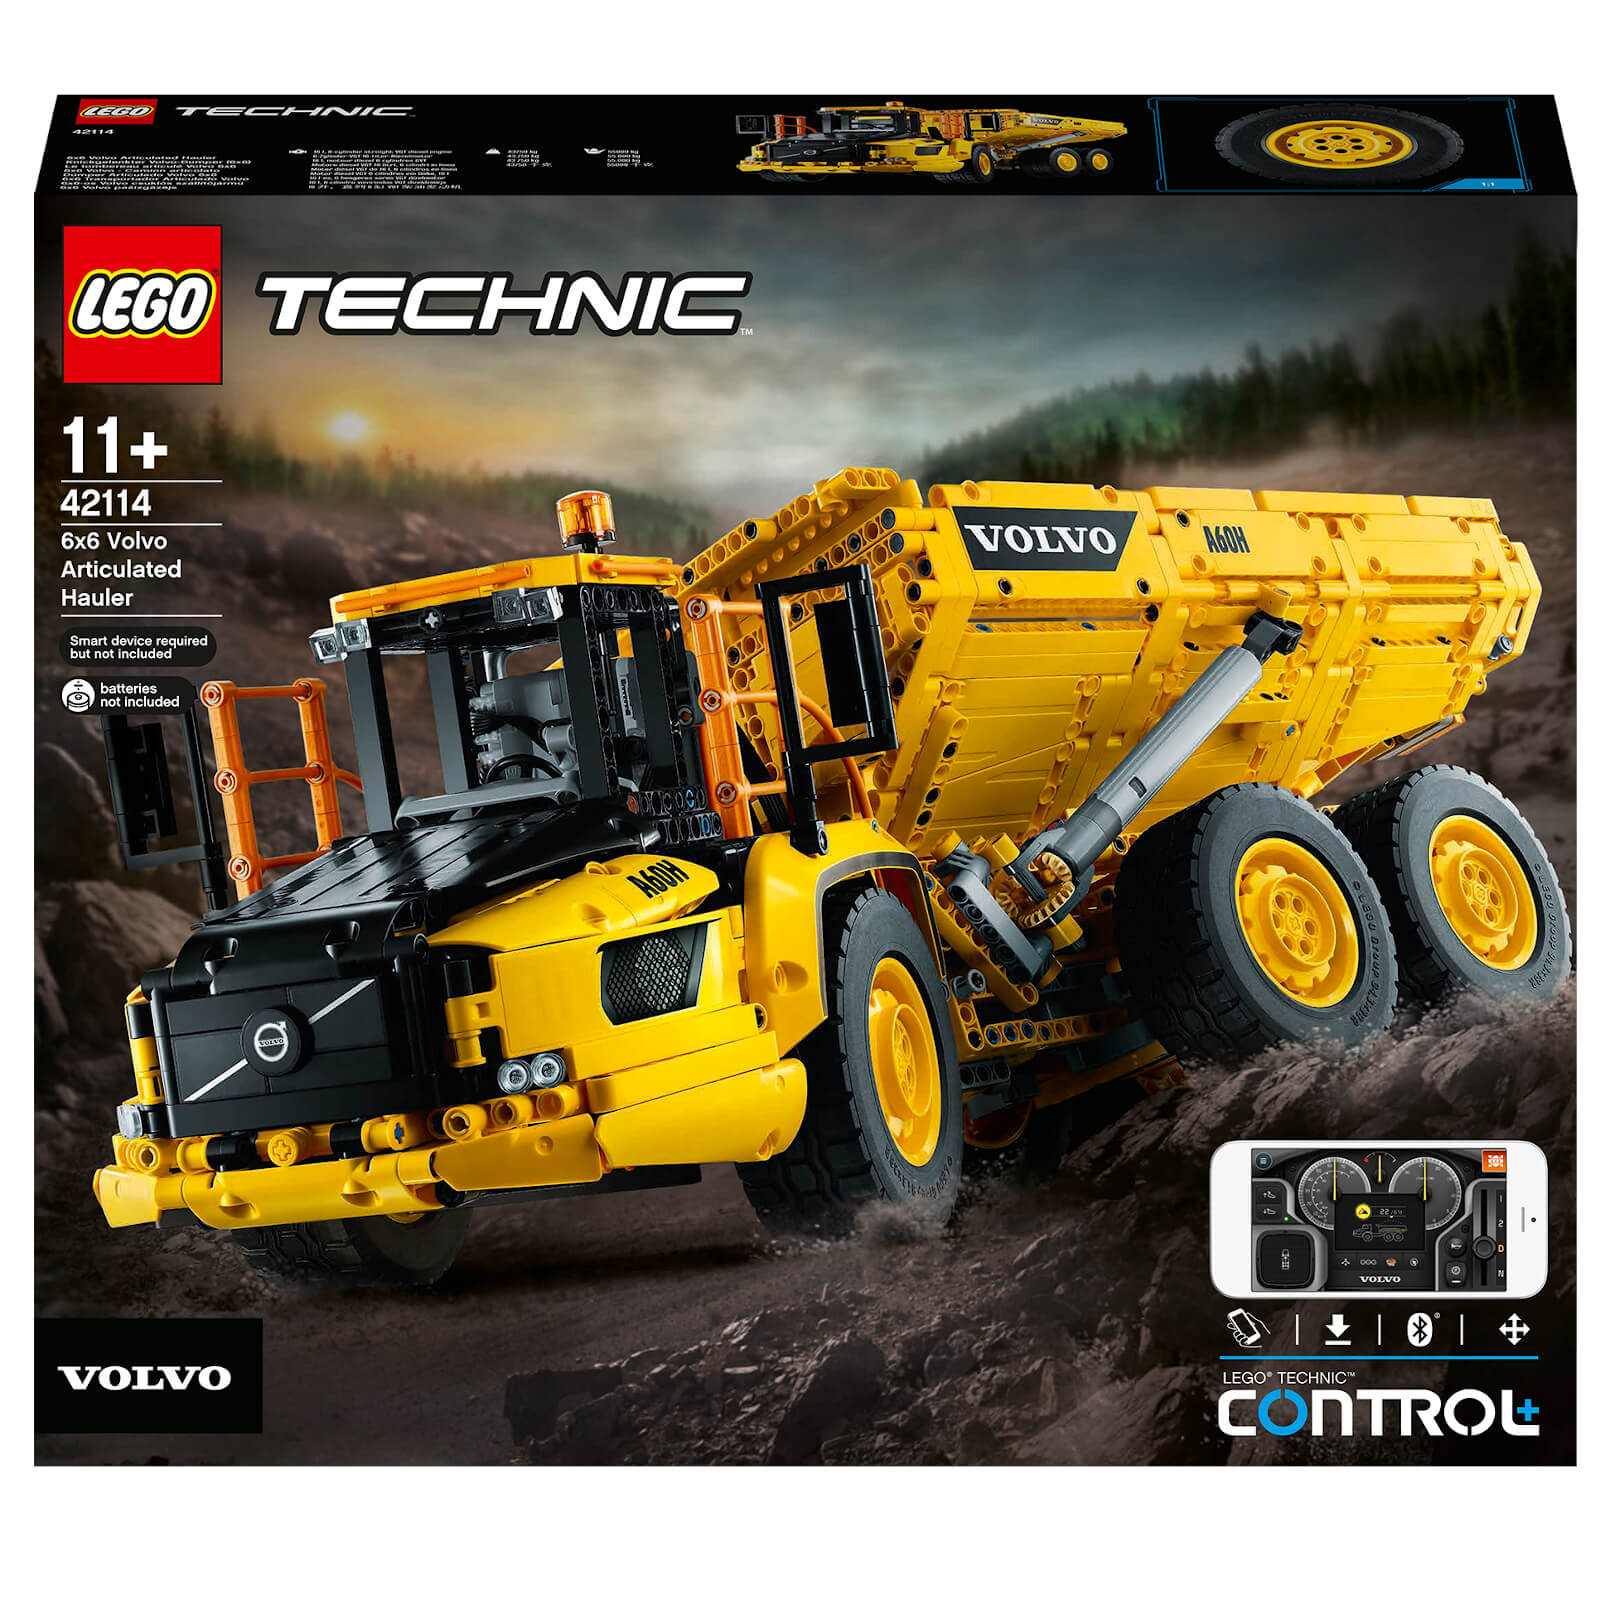 Image of LEGO Technic: 6x6 Volvo Articulated Hauler RC Truck (42114)